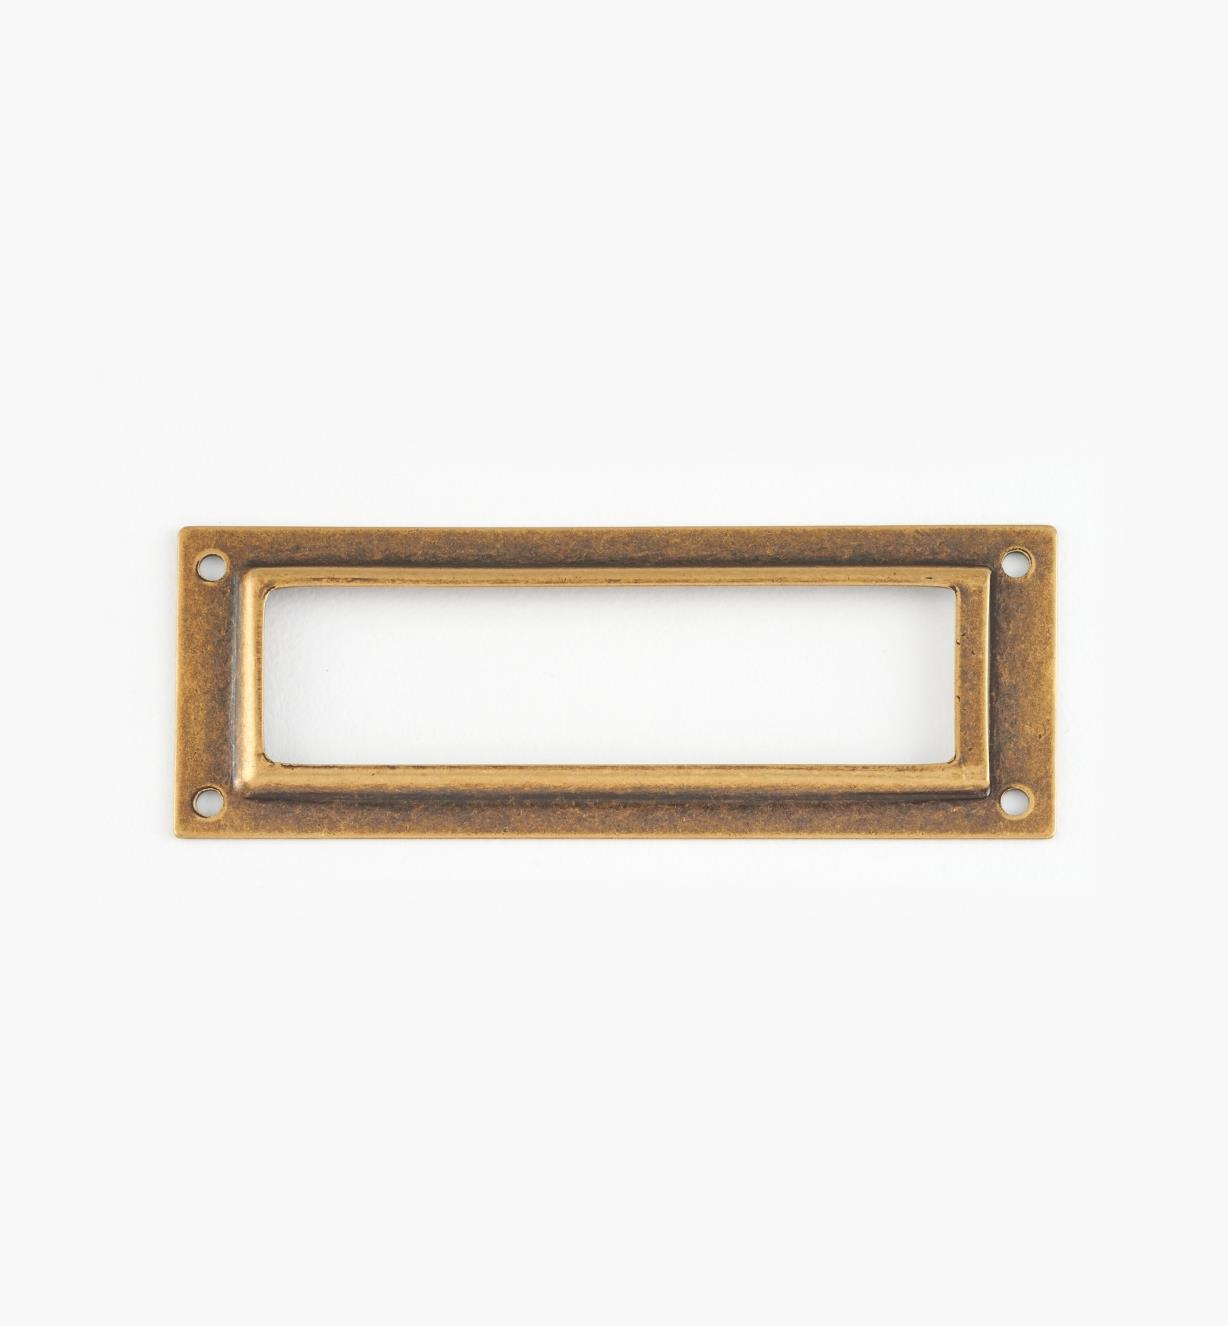 01A5792 - Antique Brass Label Holder